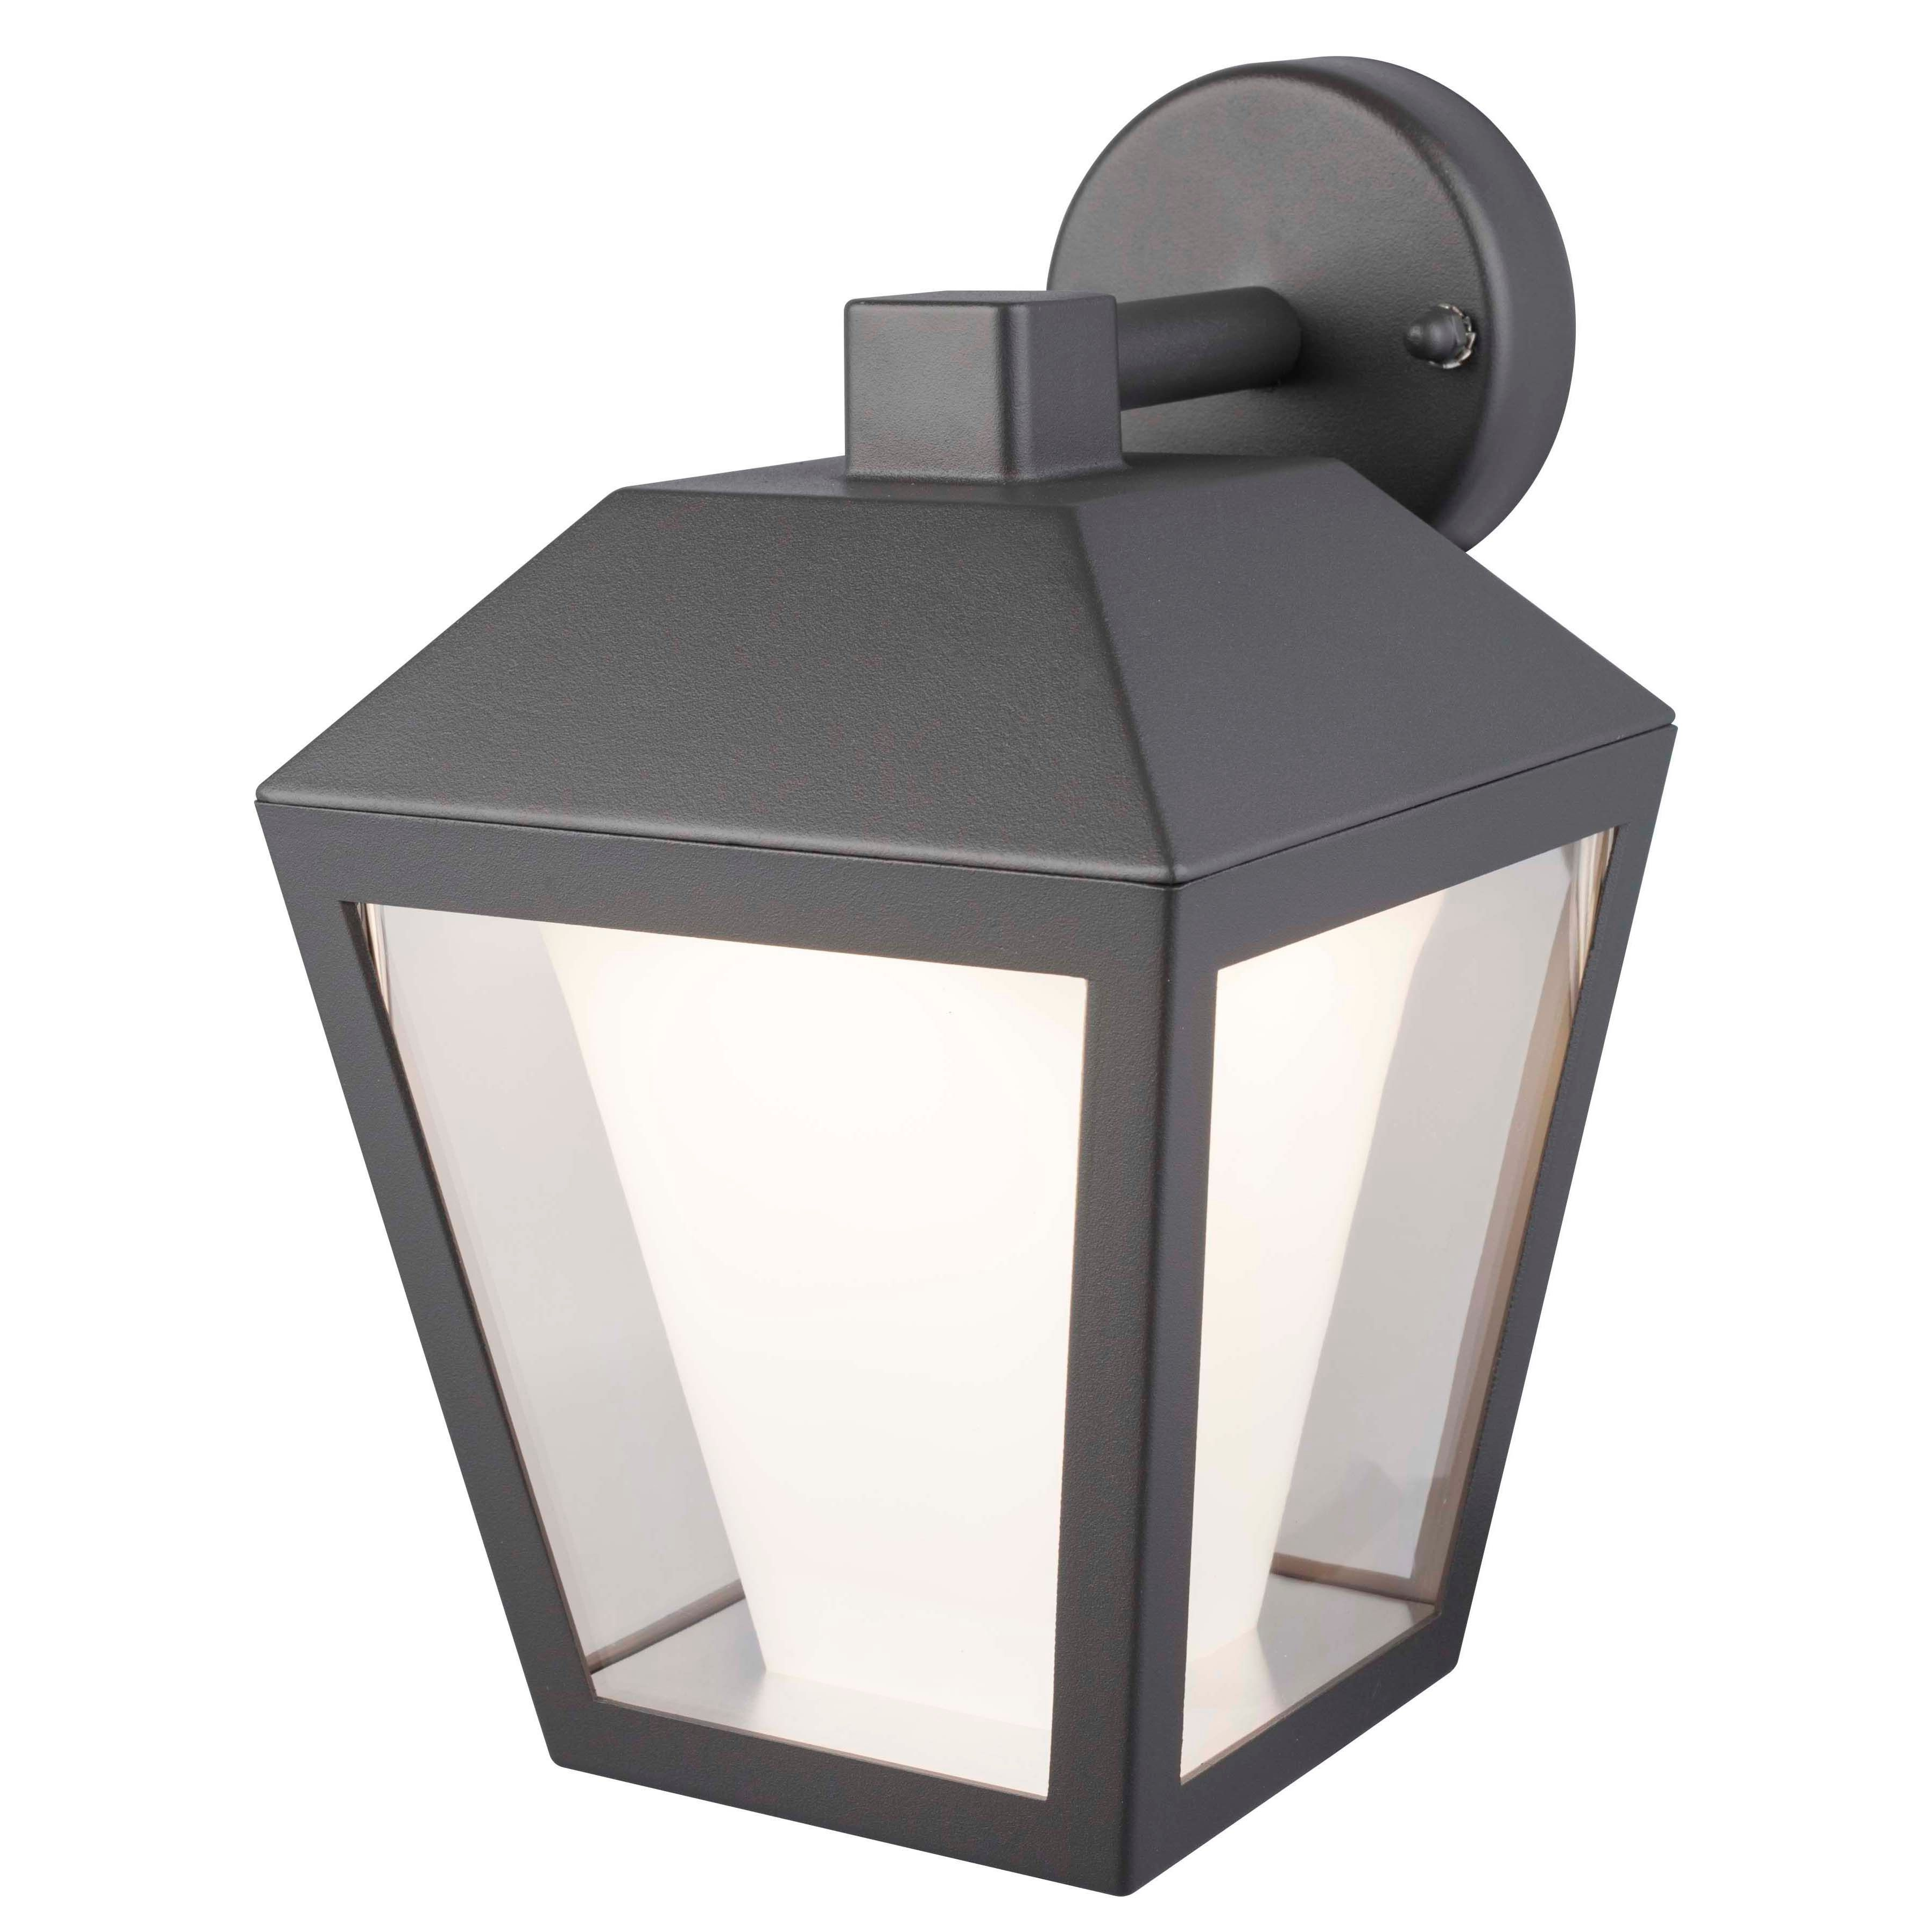 Outdoor Mains Lanterns Intended For Best And Newest B Q Outdoor Pir Security Lights – Outdoor Lighting Ideas (View 12 of 20)